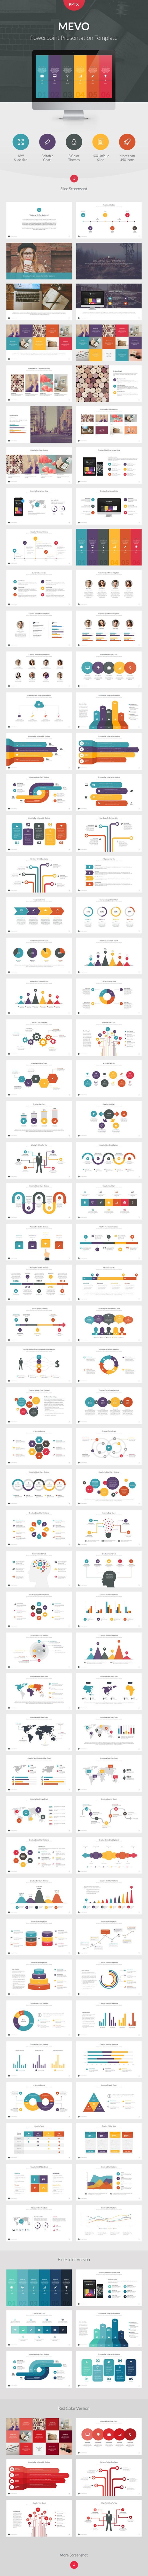 Presentation template, themeforest.co.uk